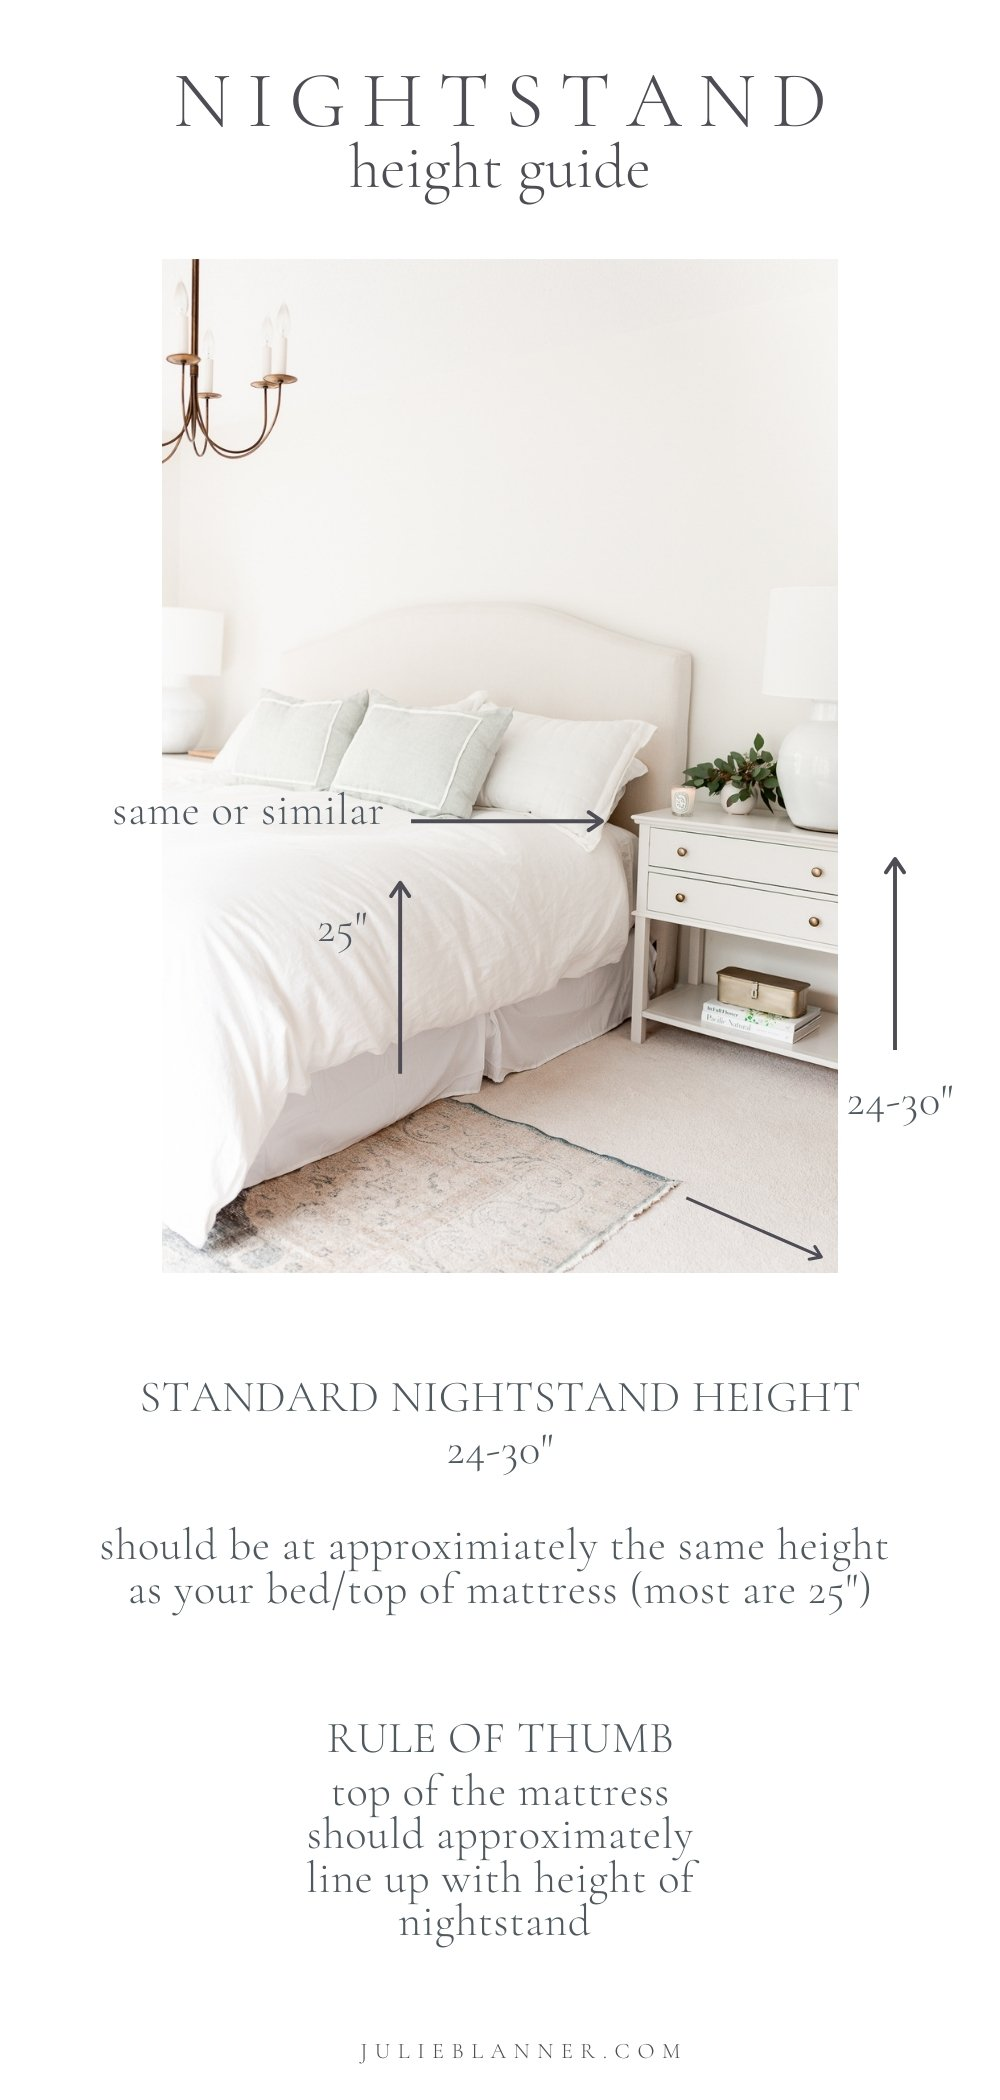 graphic showing proper nightstand height